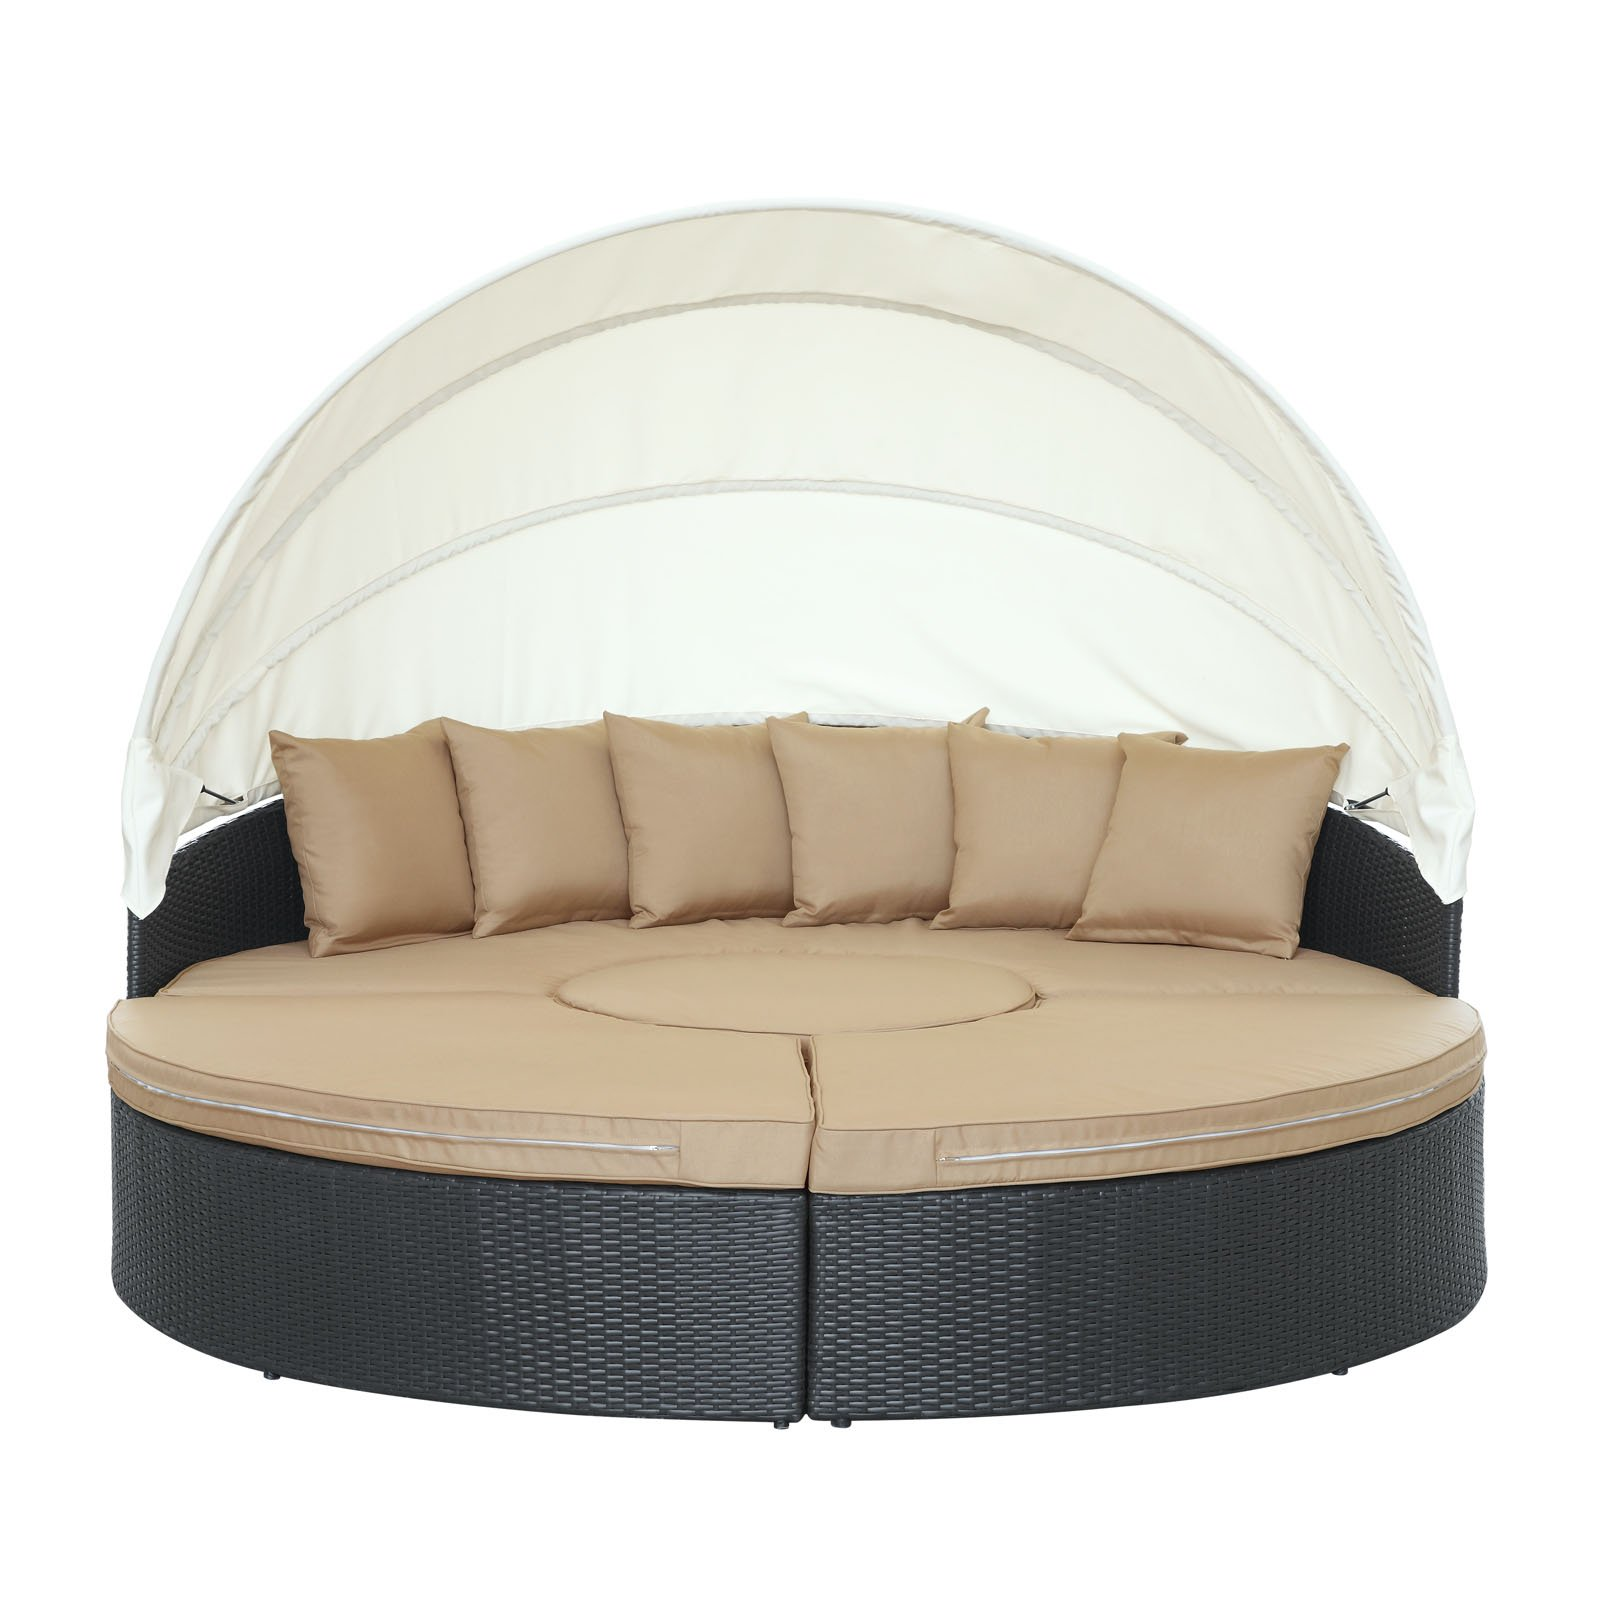 Modway Quest Circular Outdoor Wicker Rattan Patio Daybed with Canopy in Espresso Mocha